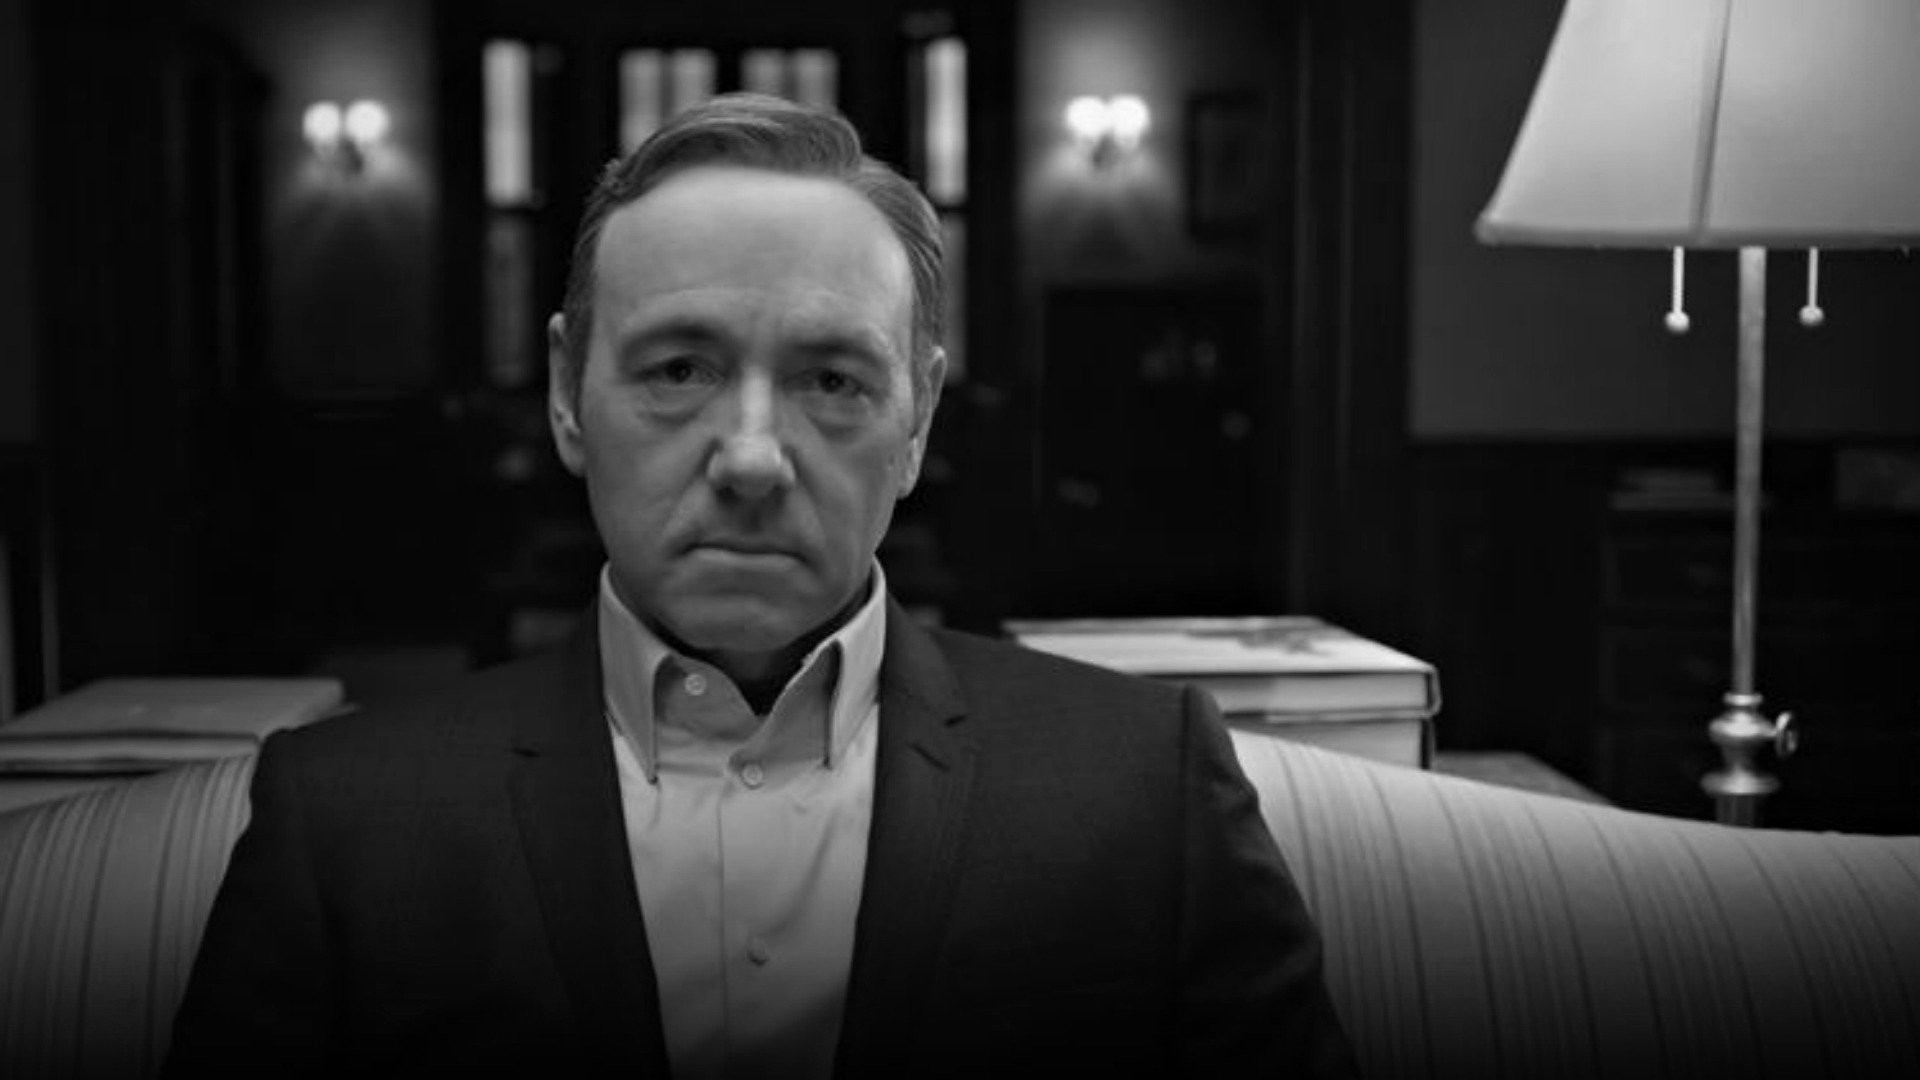 HOUSE OF CARDS political drama series (32) wallpaper     378012    WallpaperUP